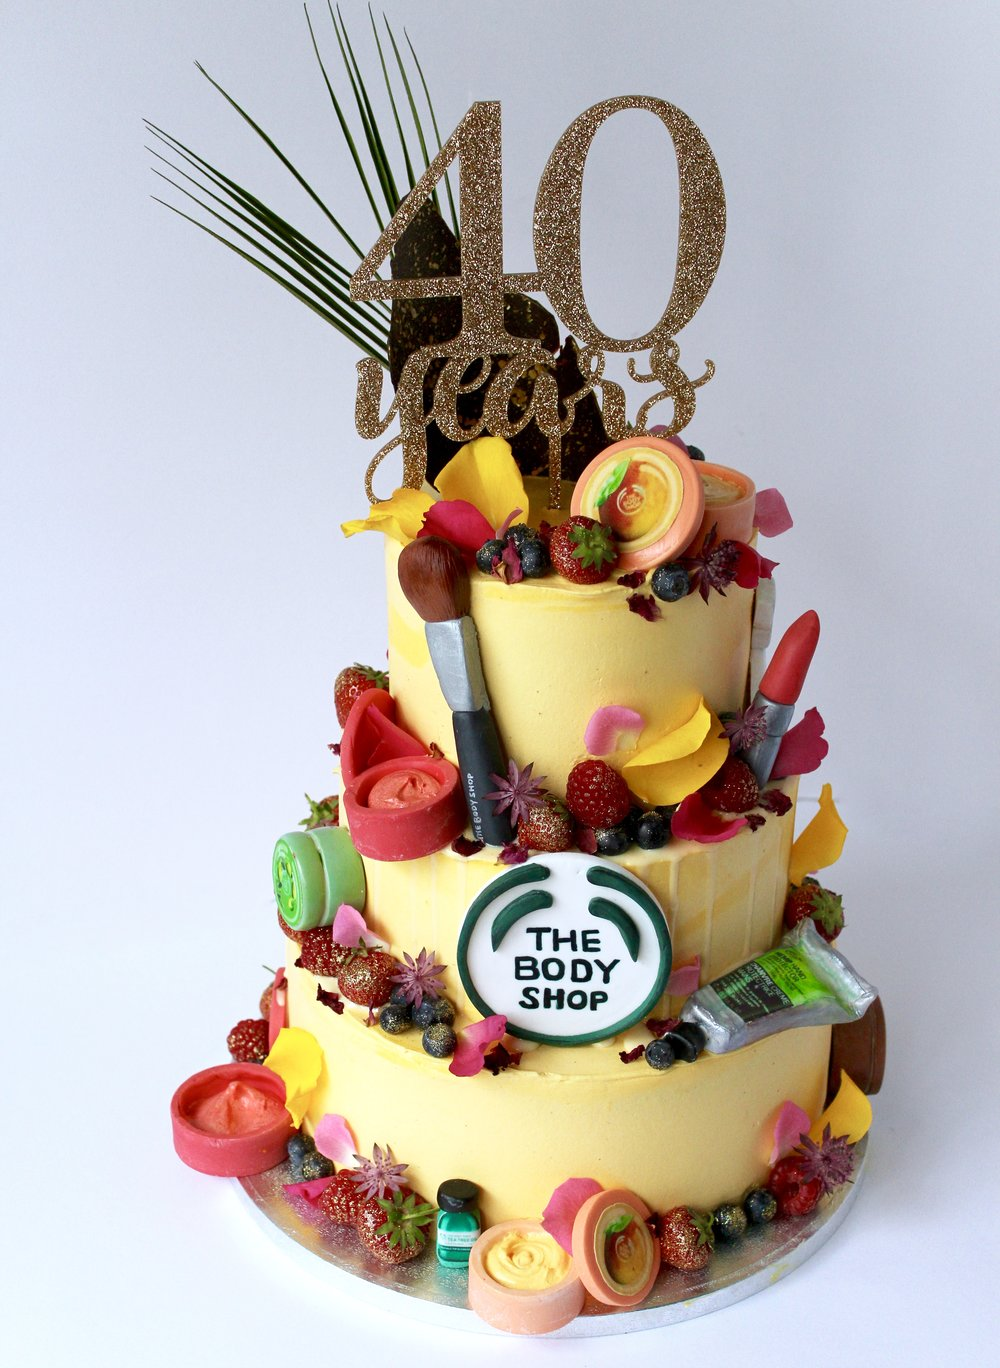 40th Birthday cake for The Body Shop by Yolk. www.cakesbyyolk.com